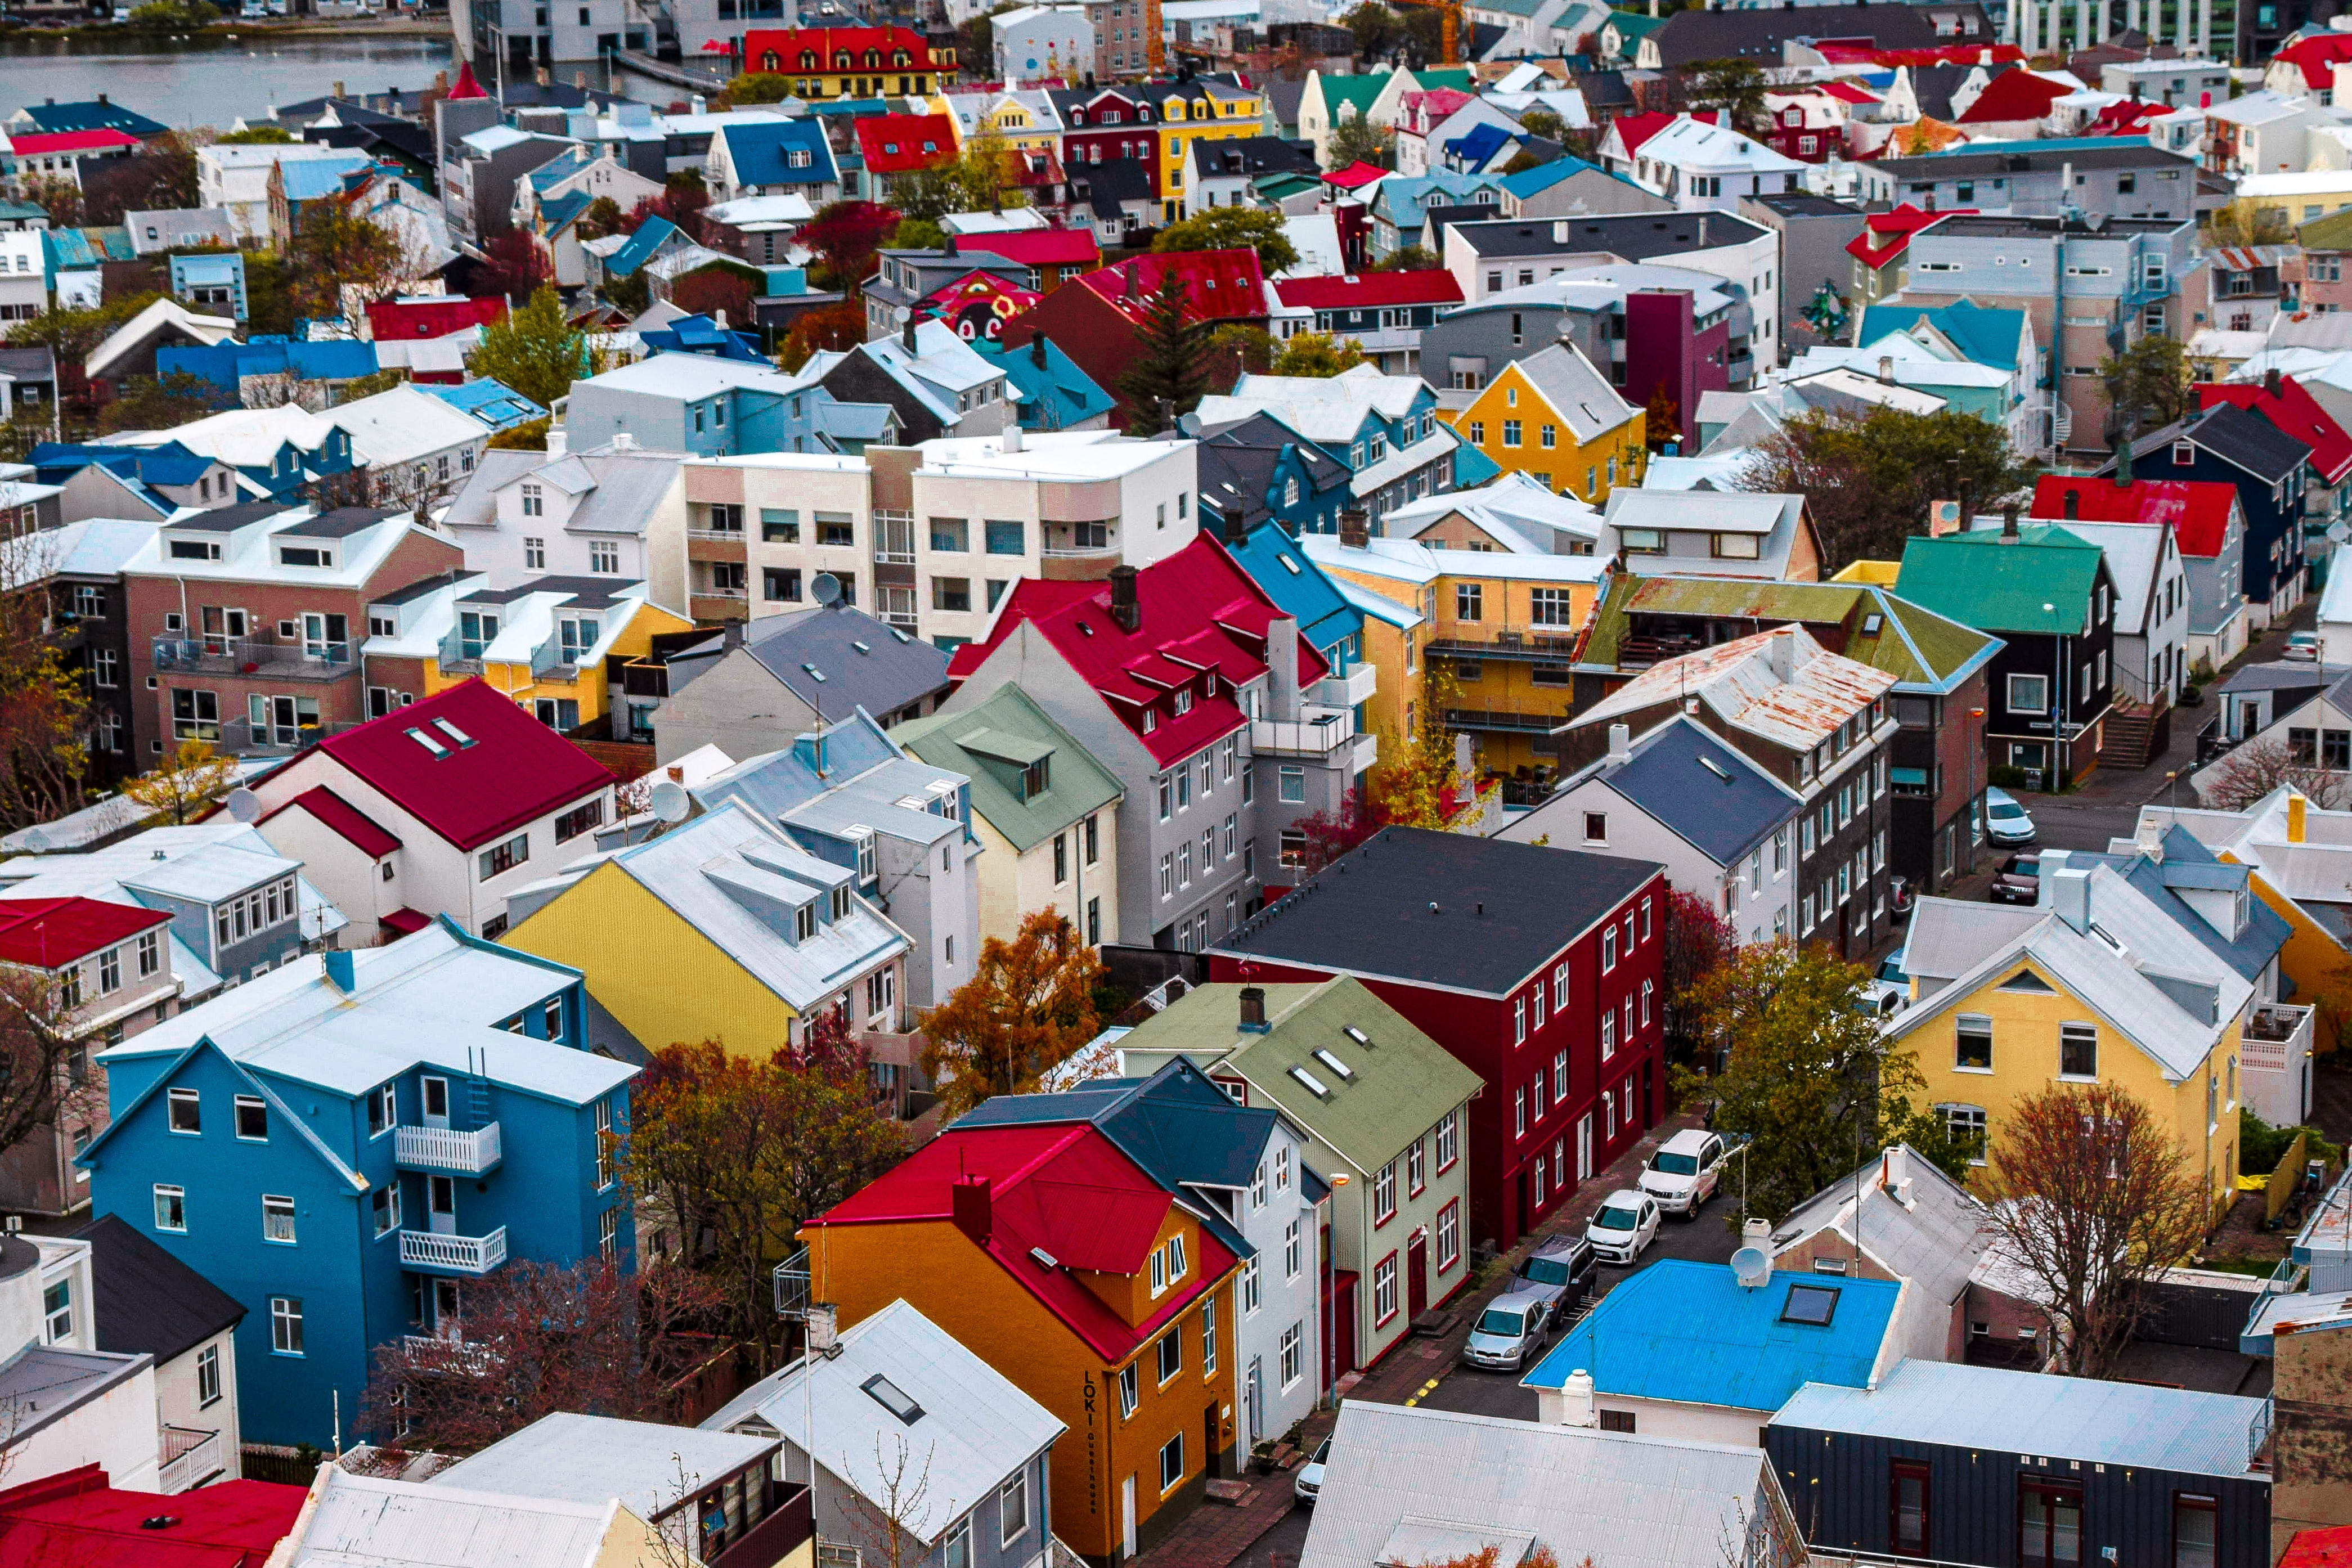 141909 download wallpaper Building, Multicolored, Motley, View From Above, City, Cities screensavers and pictures for free